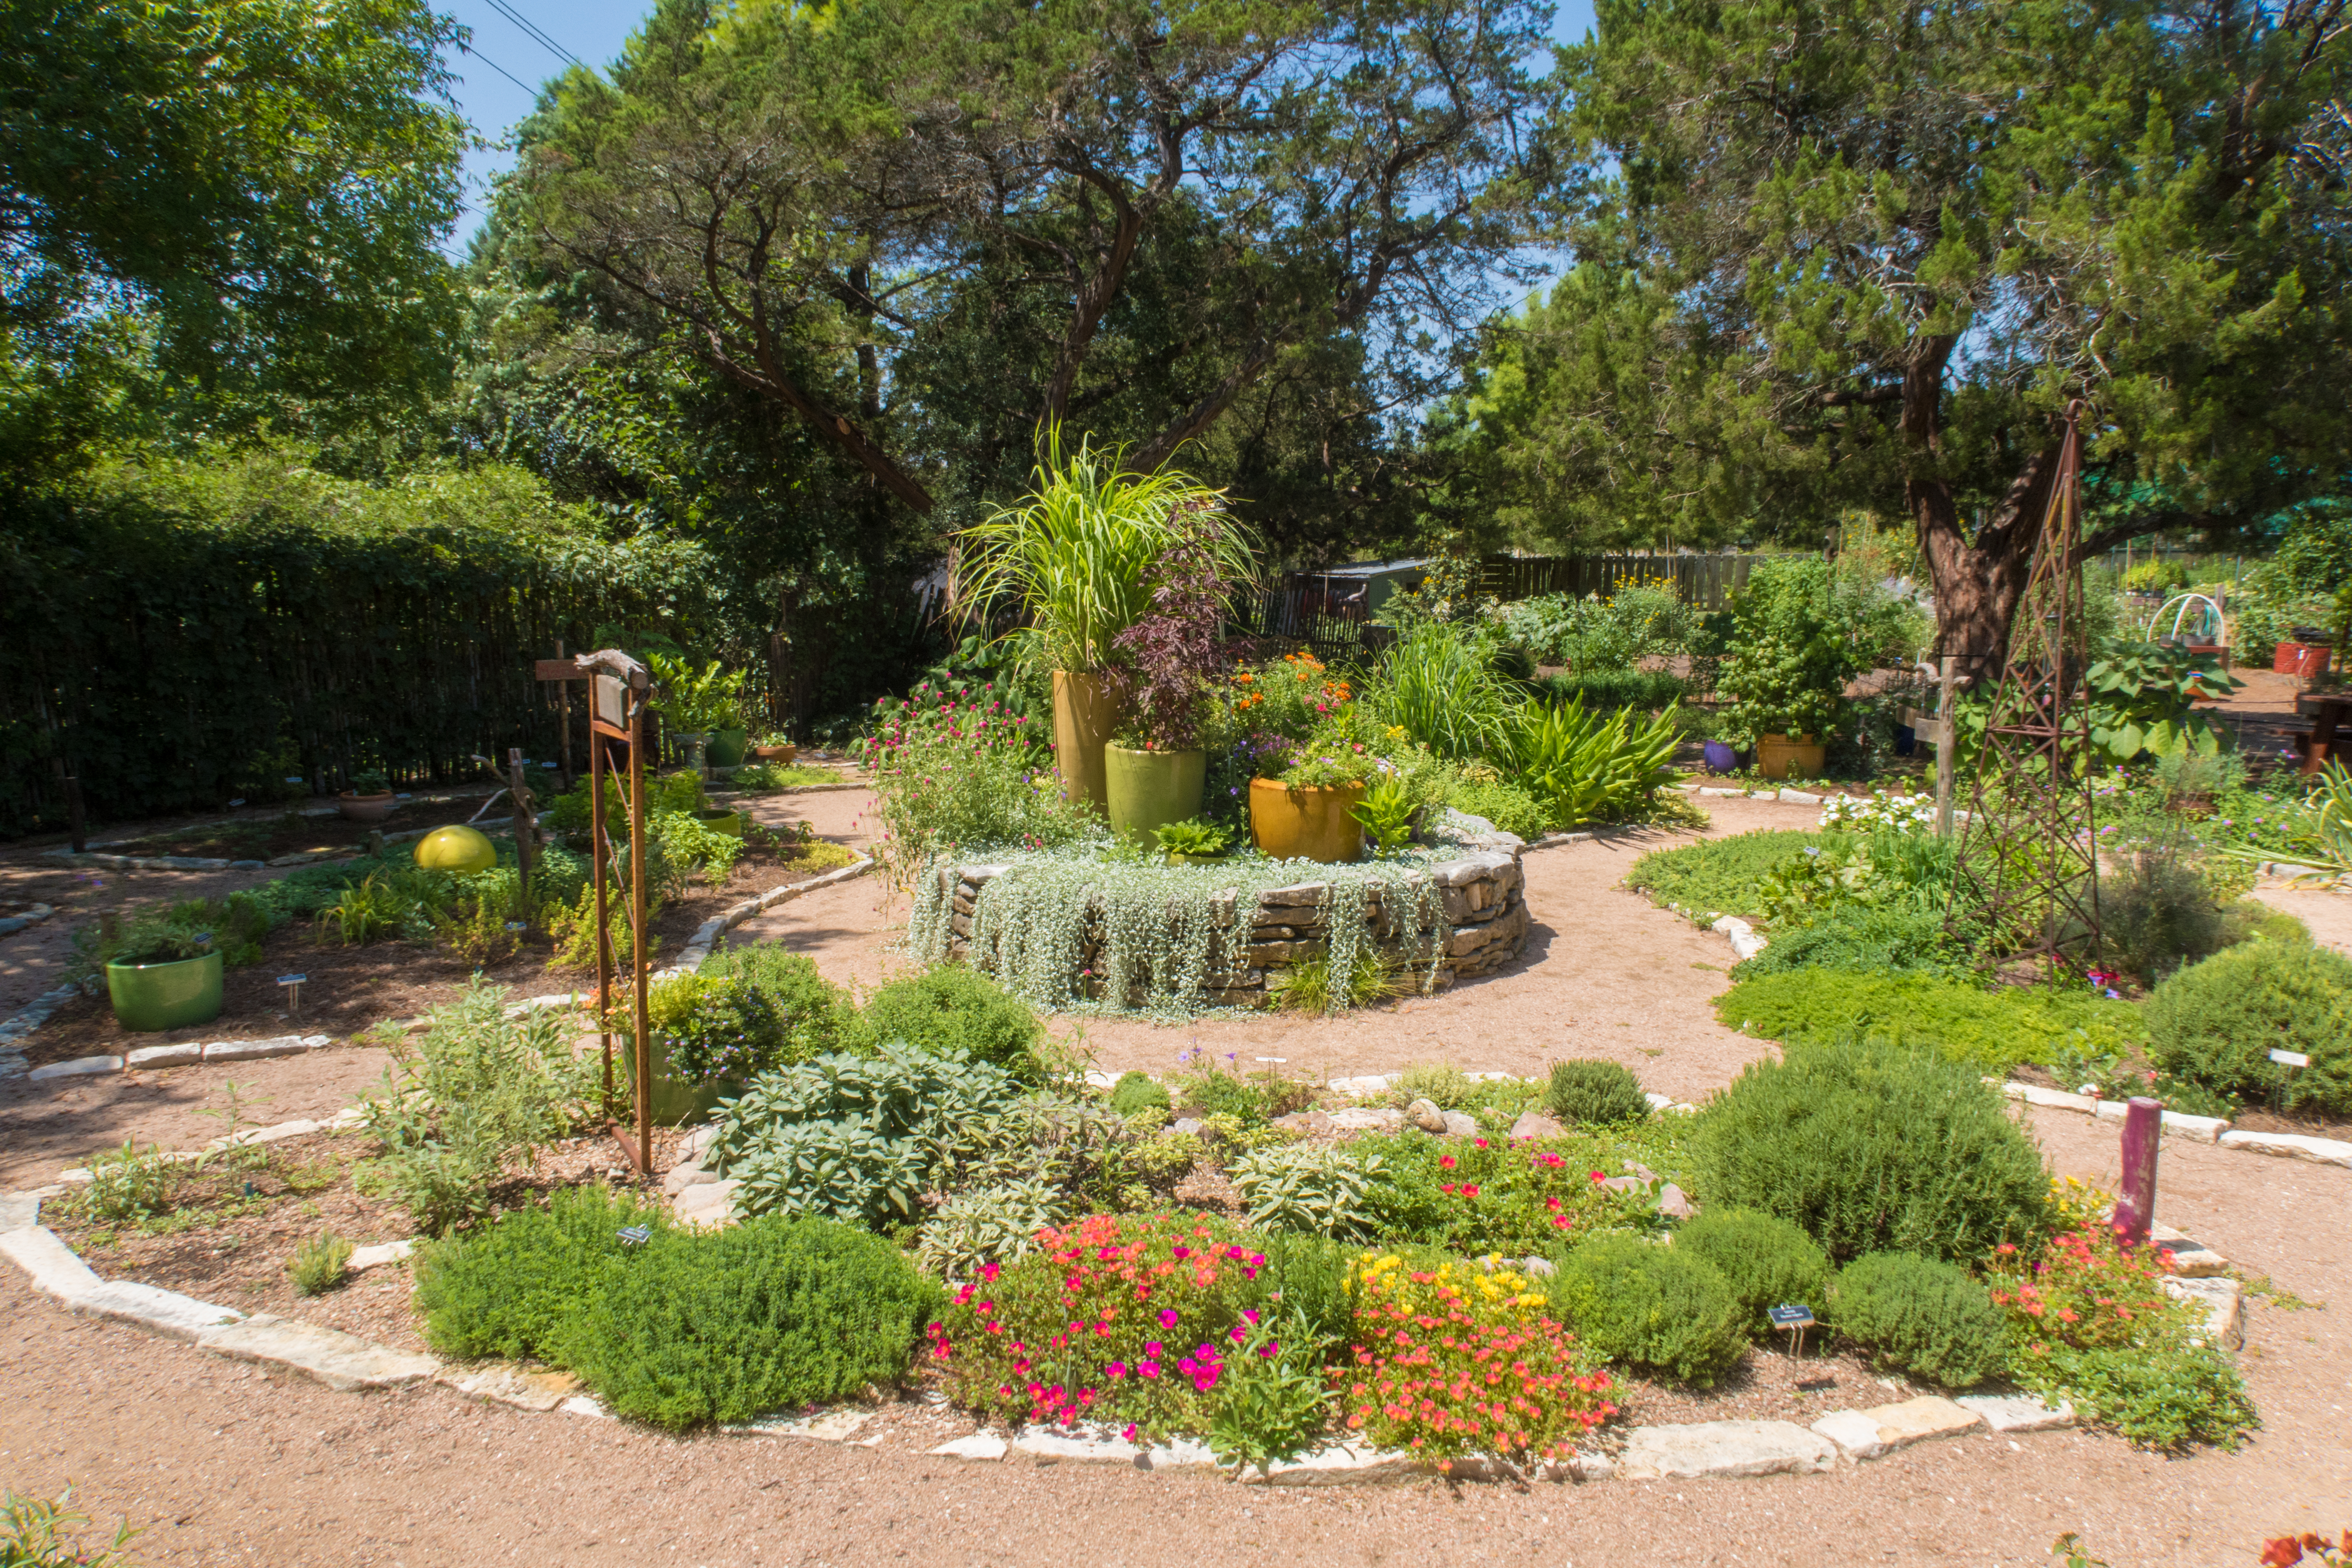 A semi-formal garden with wide, curving paths of decomposed granite circular planting beds—raised and ground-level—full of blooming plants with a variety of shapes and textures. Large leafy trees are in the background.